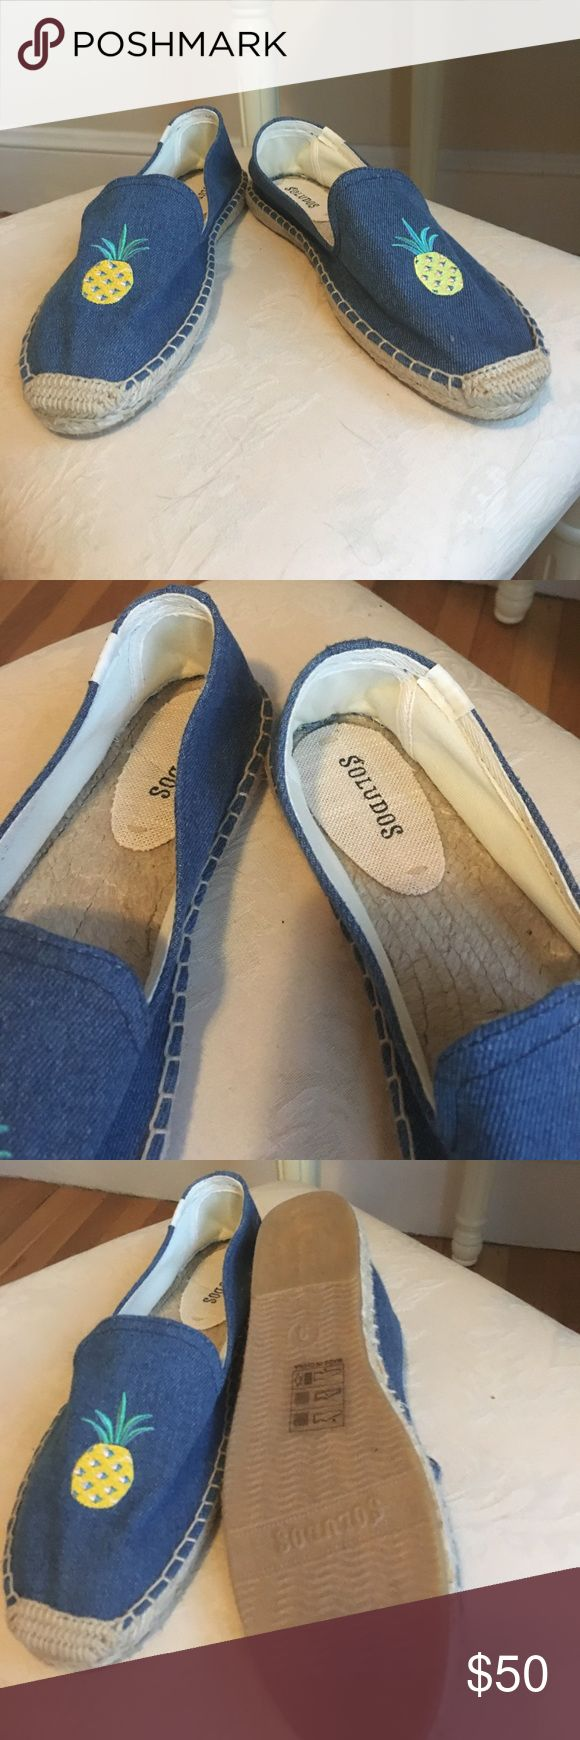 BRAND NEW Soludos espadrilles Pineapple and chambray design. Never been worn. No low offers Soludos Shoes Espadrilles